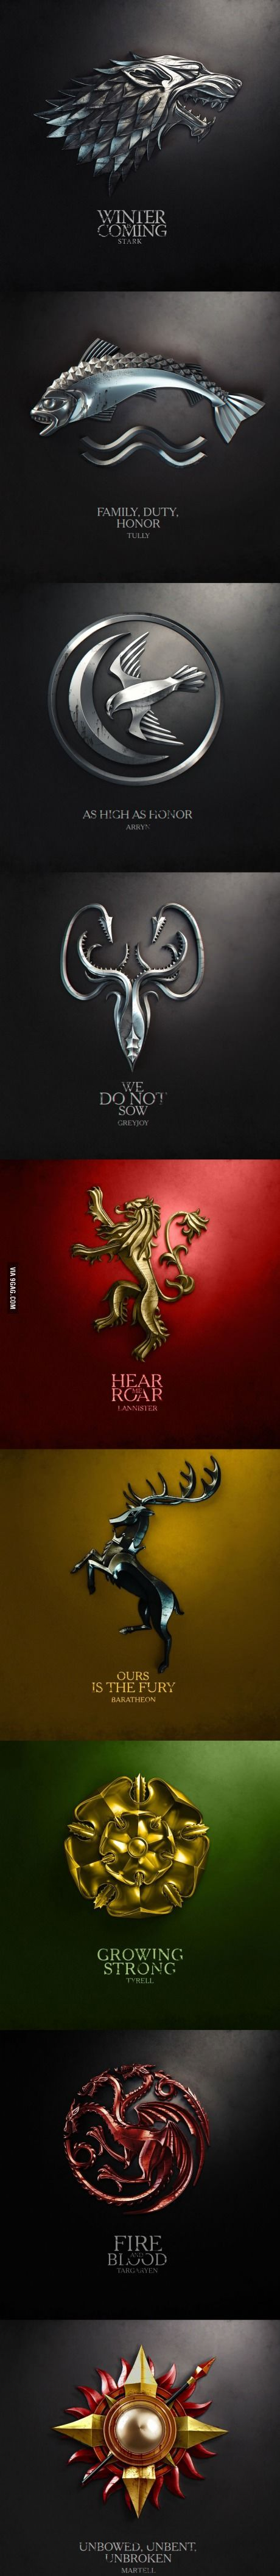 Game of Thrones House sigils and mottos - how much of a nerd am I that this gave me chills?